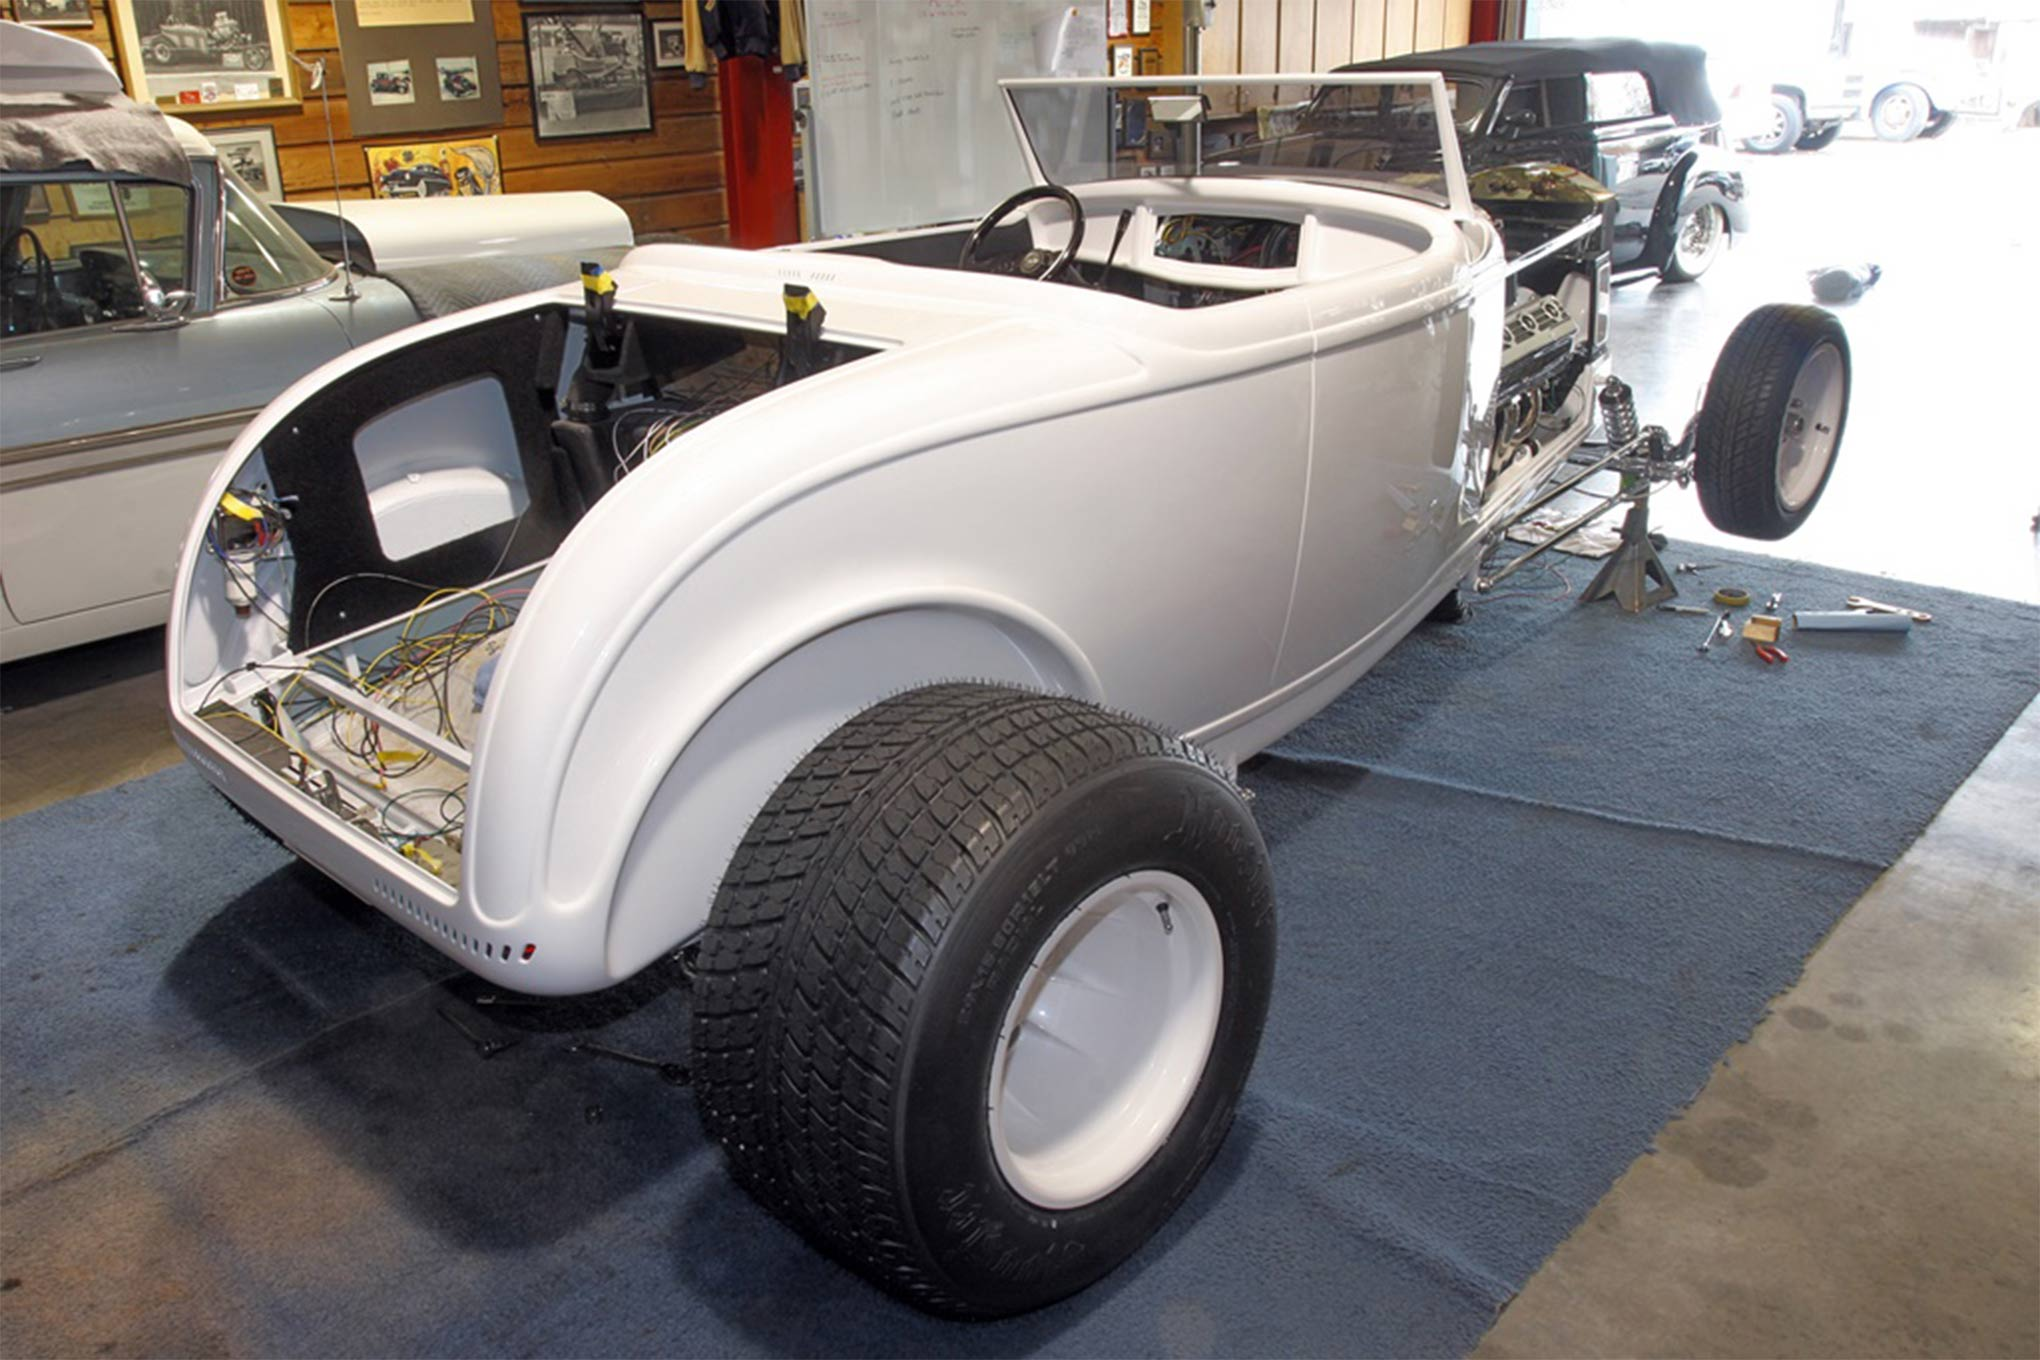 Tim Lohrey at Tim's Hot Rods is doing a fantastic job bring the roadster back to its original glory.